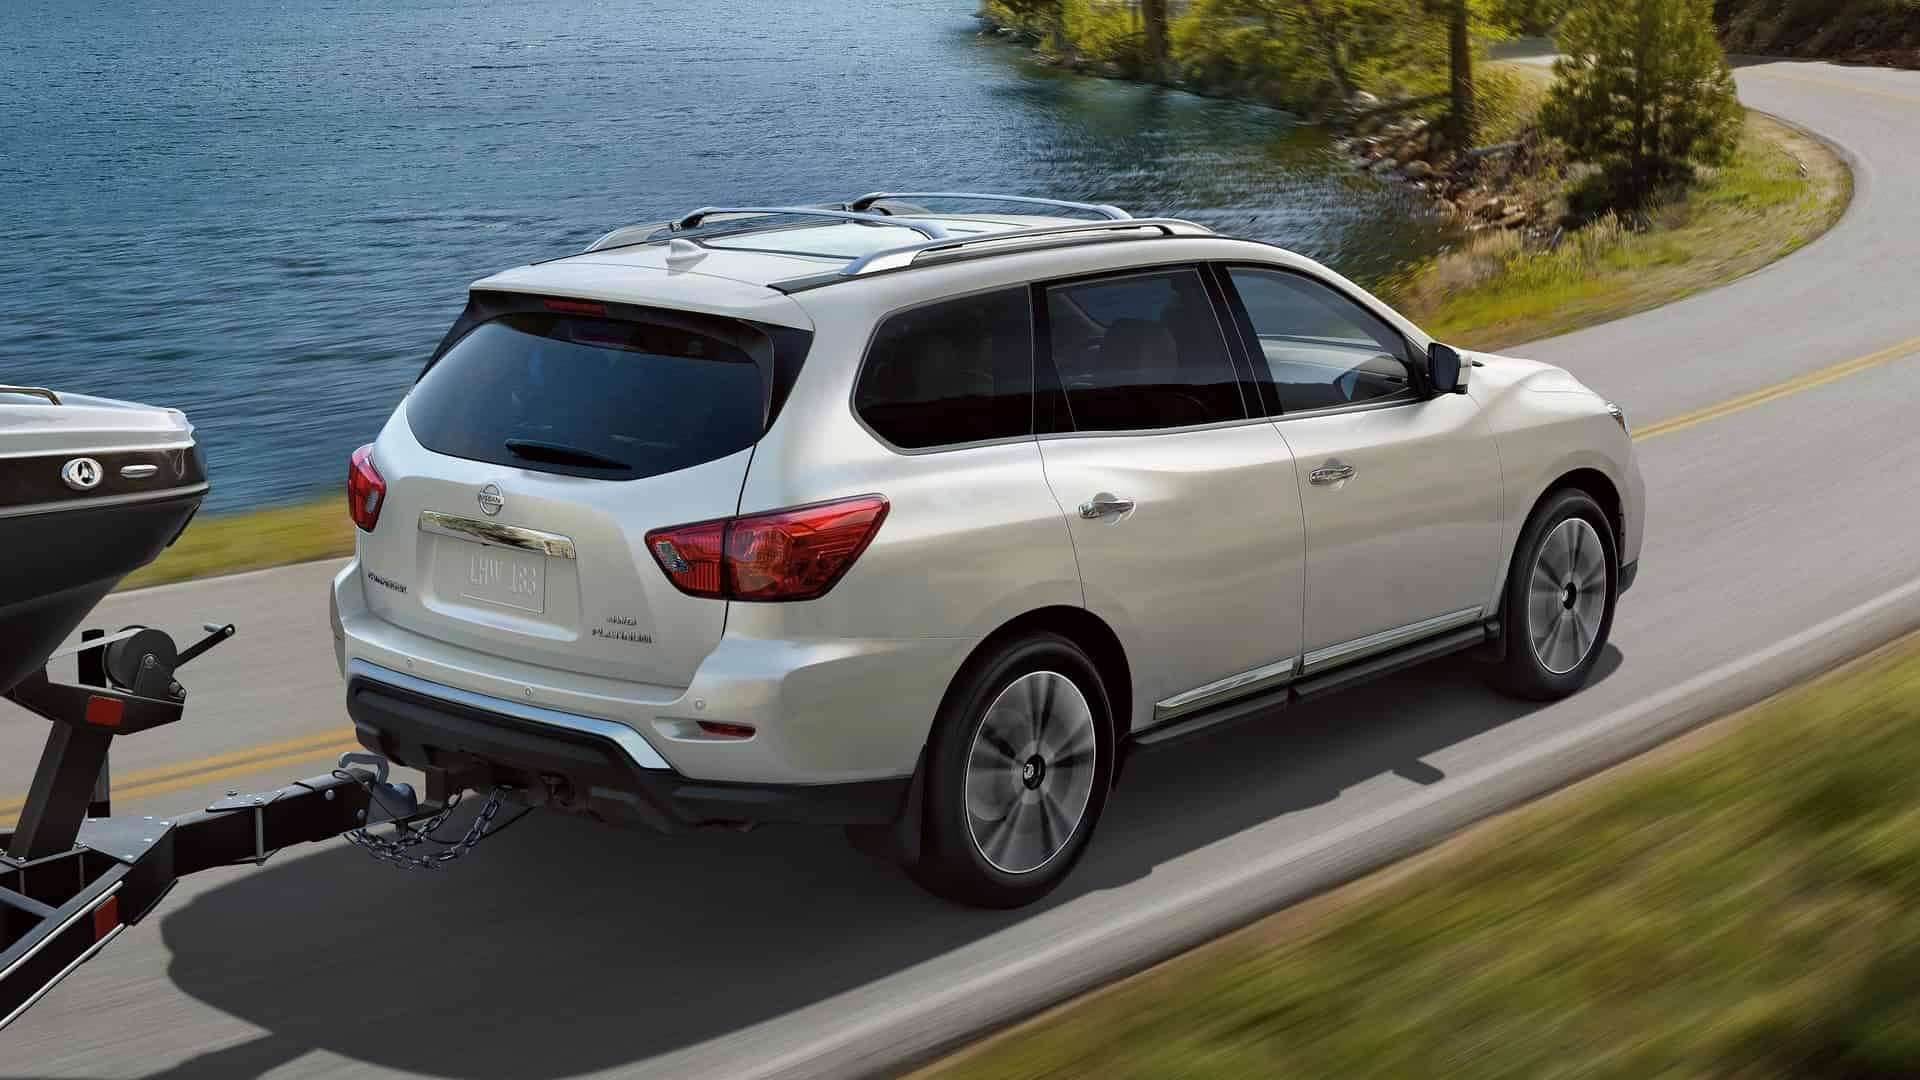 What's new with the 2020 Nissan Pathfinder near Boerne TX